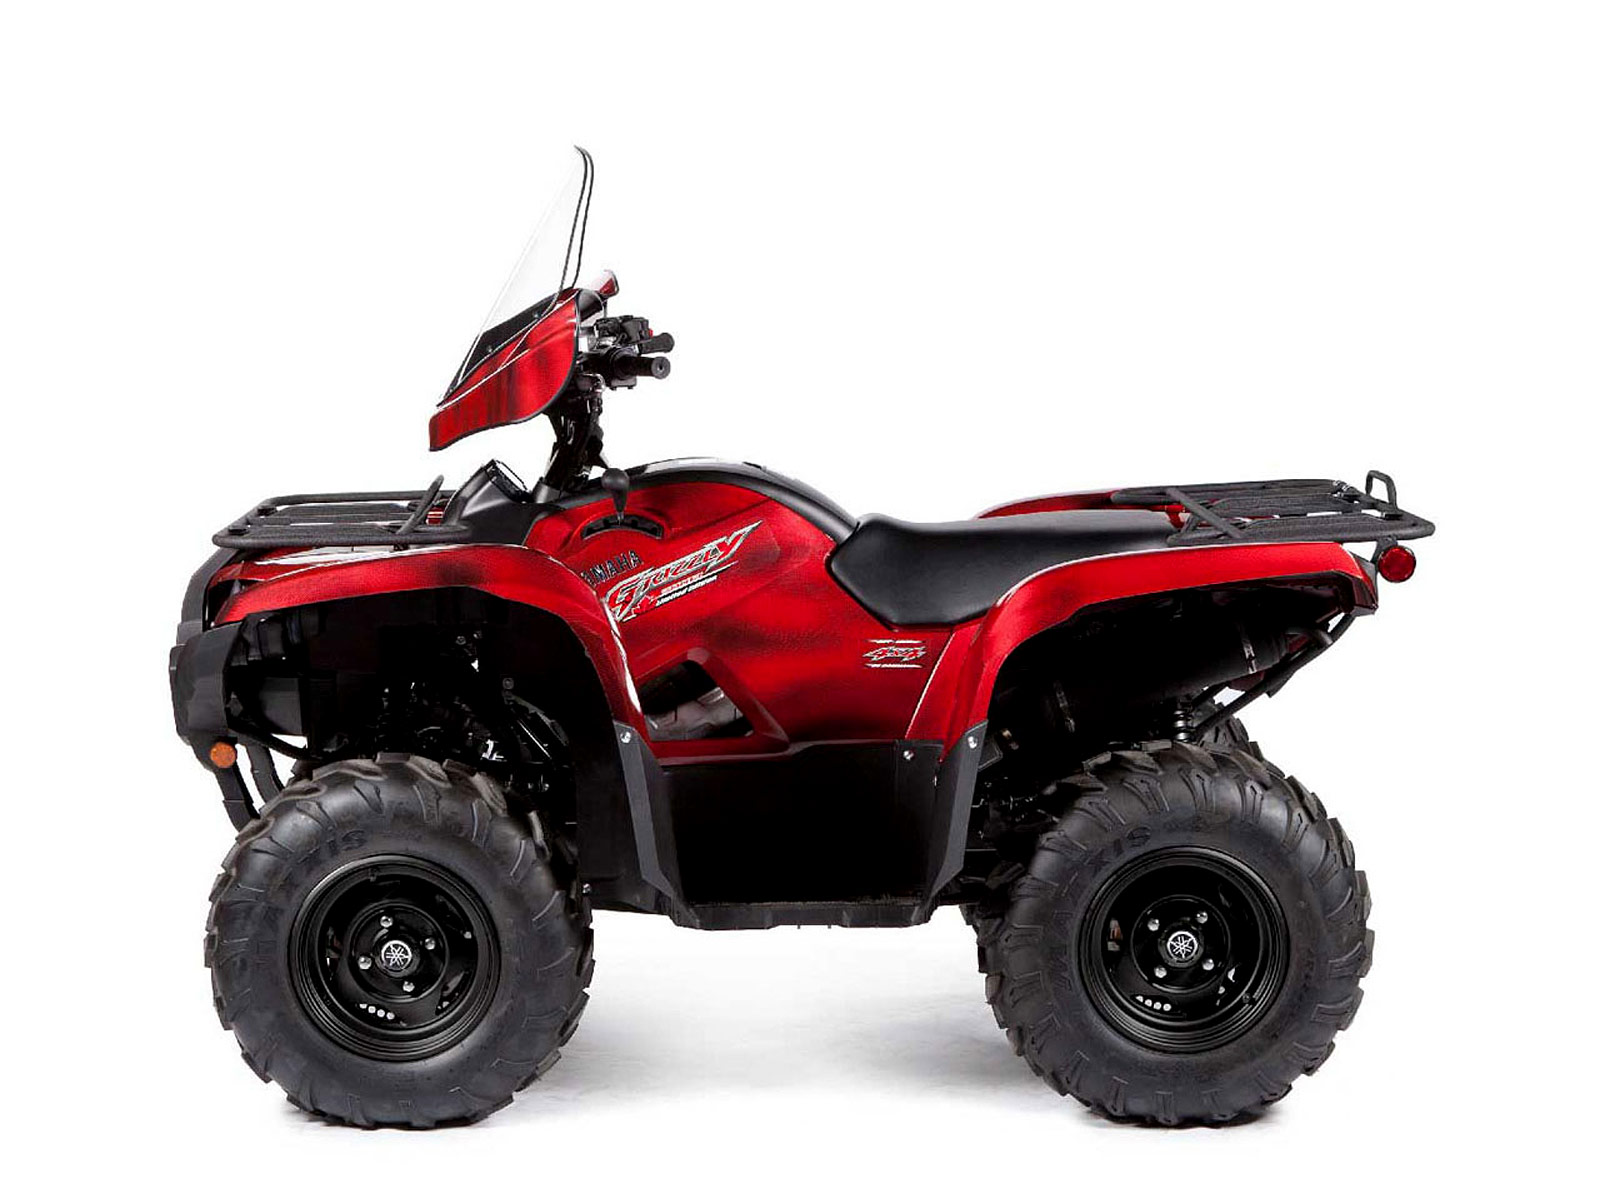 2013 yamaha grizzly 550 fi auto 4x4 eps le canada specs for Yamaha grizzly 50